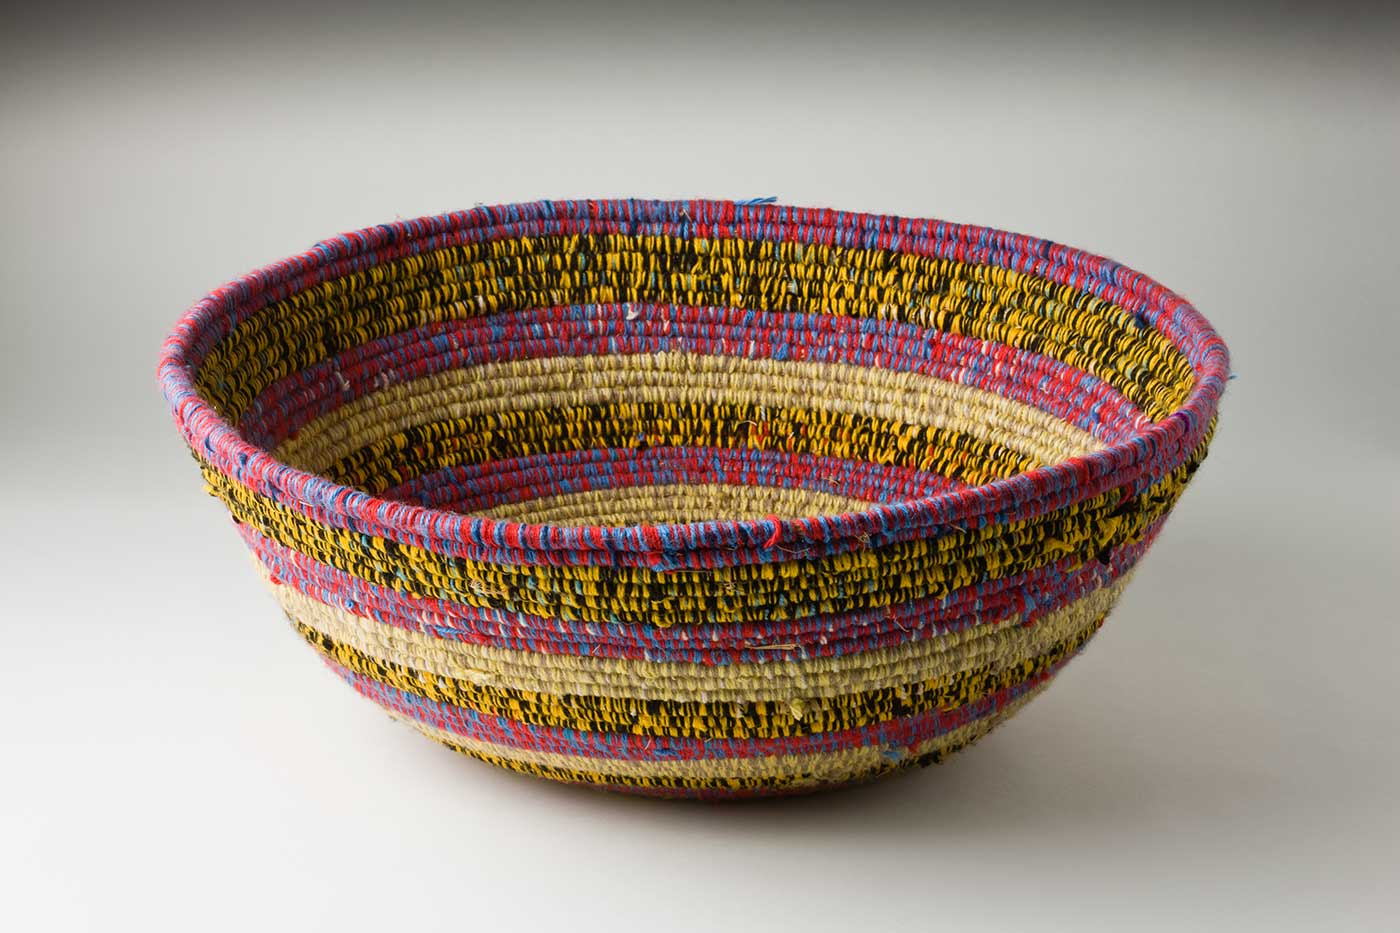 An oval coiled multicoloured yarn and plant fibre basket. The plant fibre in the centre of the basket is covered by purple-yellow yarn, followed by horizontal alternate yarn coverings over the fibre. The yarn colours are green-yellow, tan-yellow, purple-red, yellow-black, green-silver-brown and red-white-brown. The top plant fibre is covered by yellow-black yarn. - click to view larger image